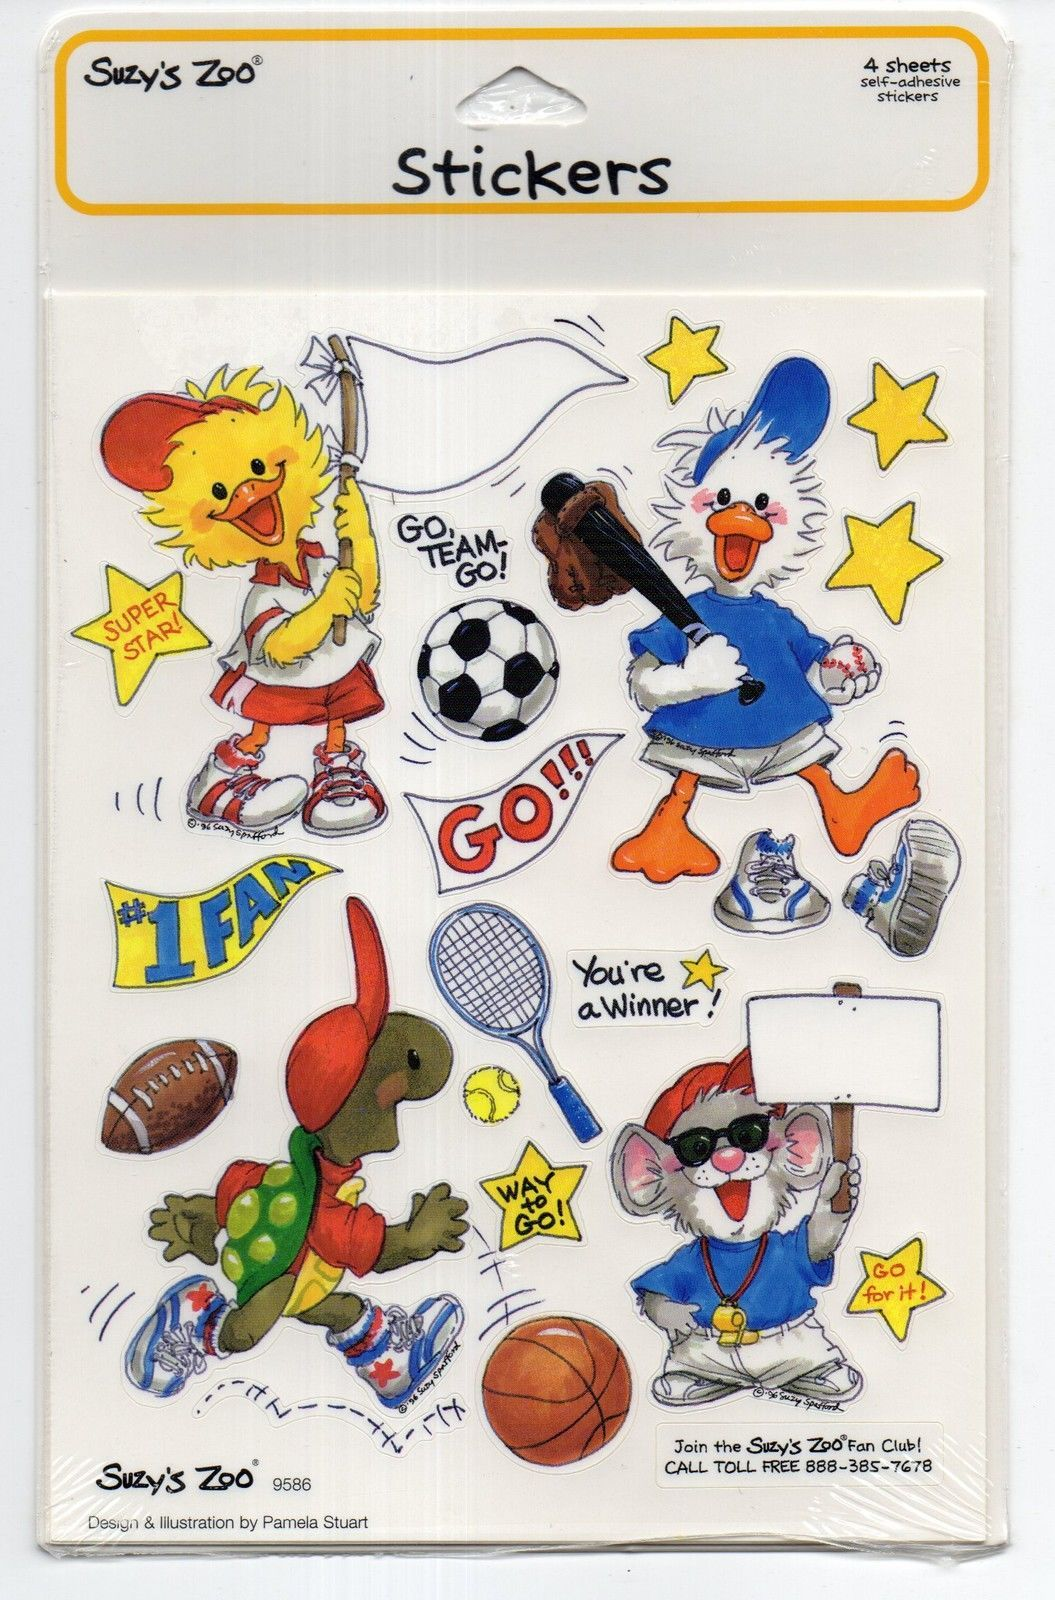 Suzys Zoo Sationary N Stickers Set